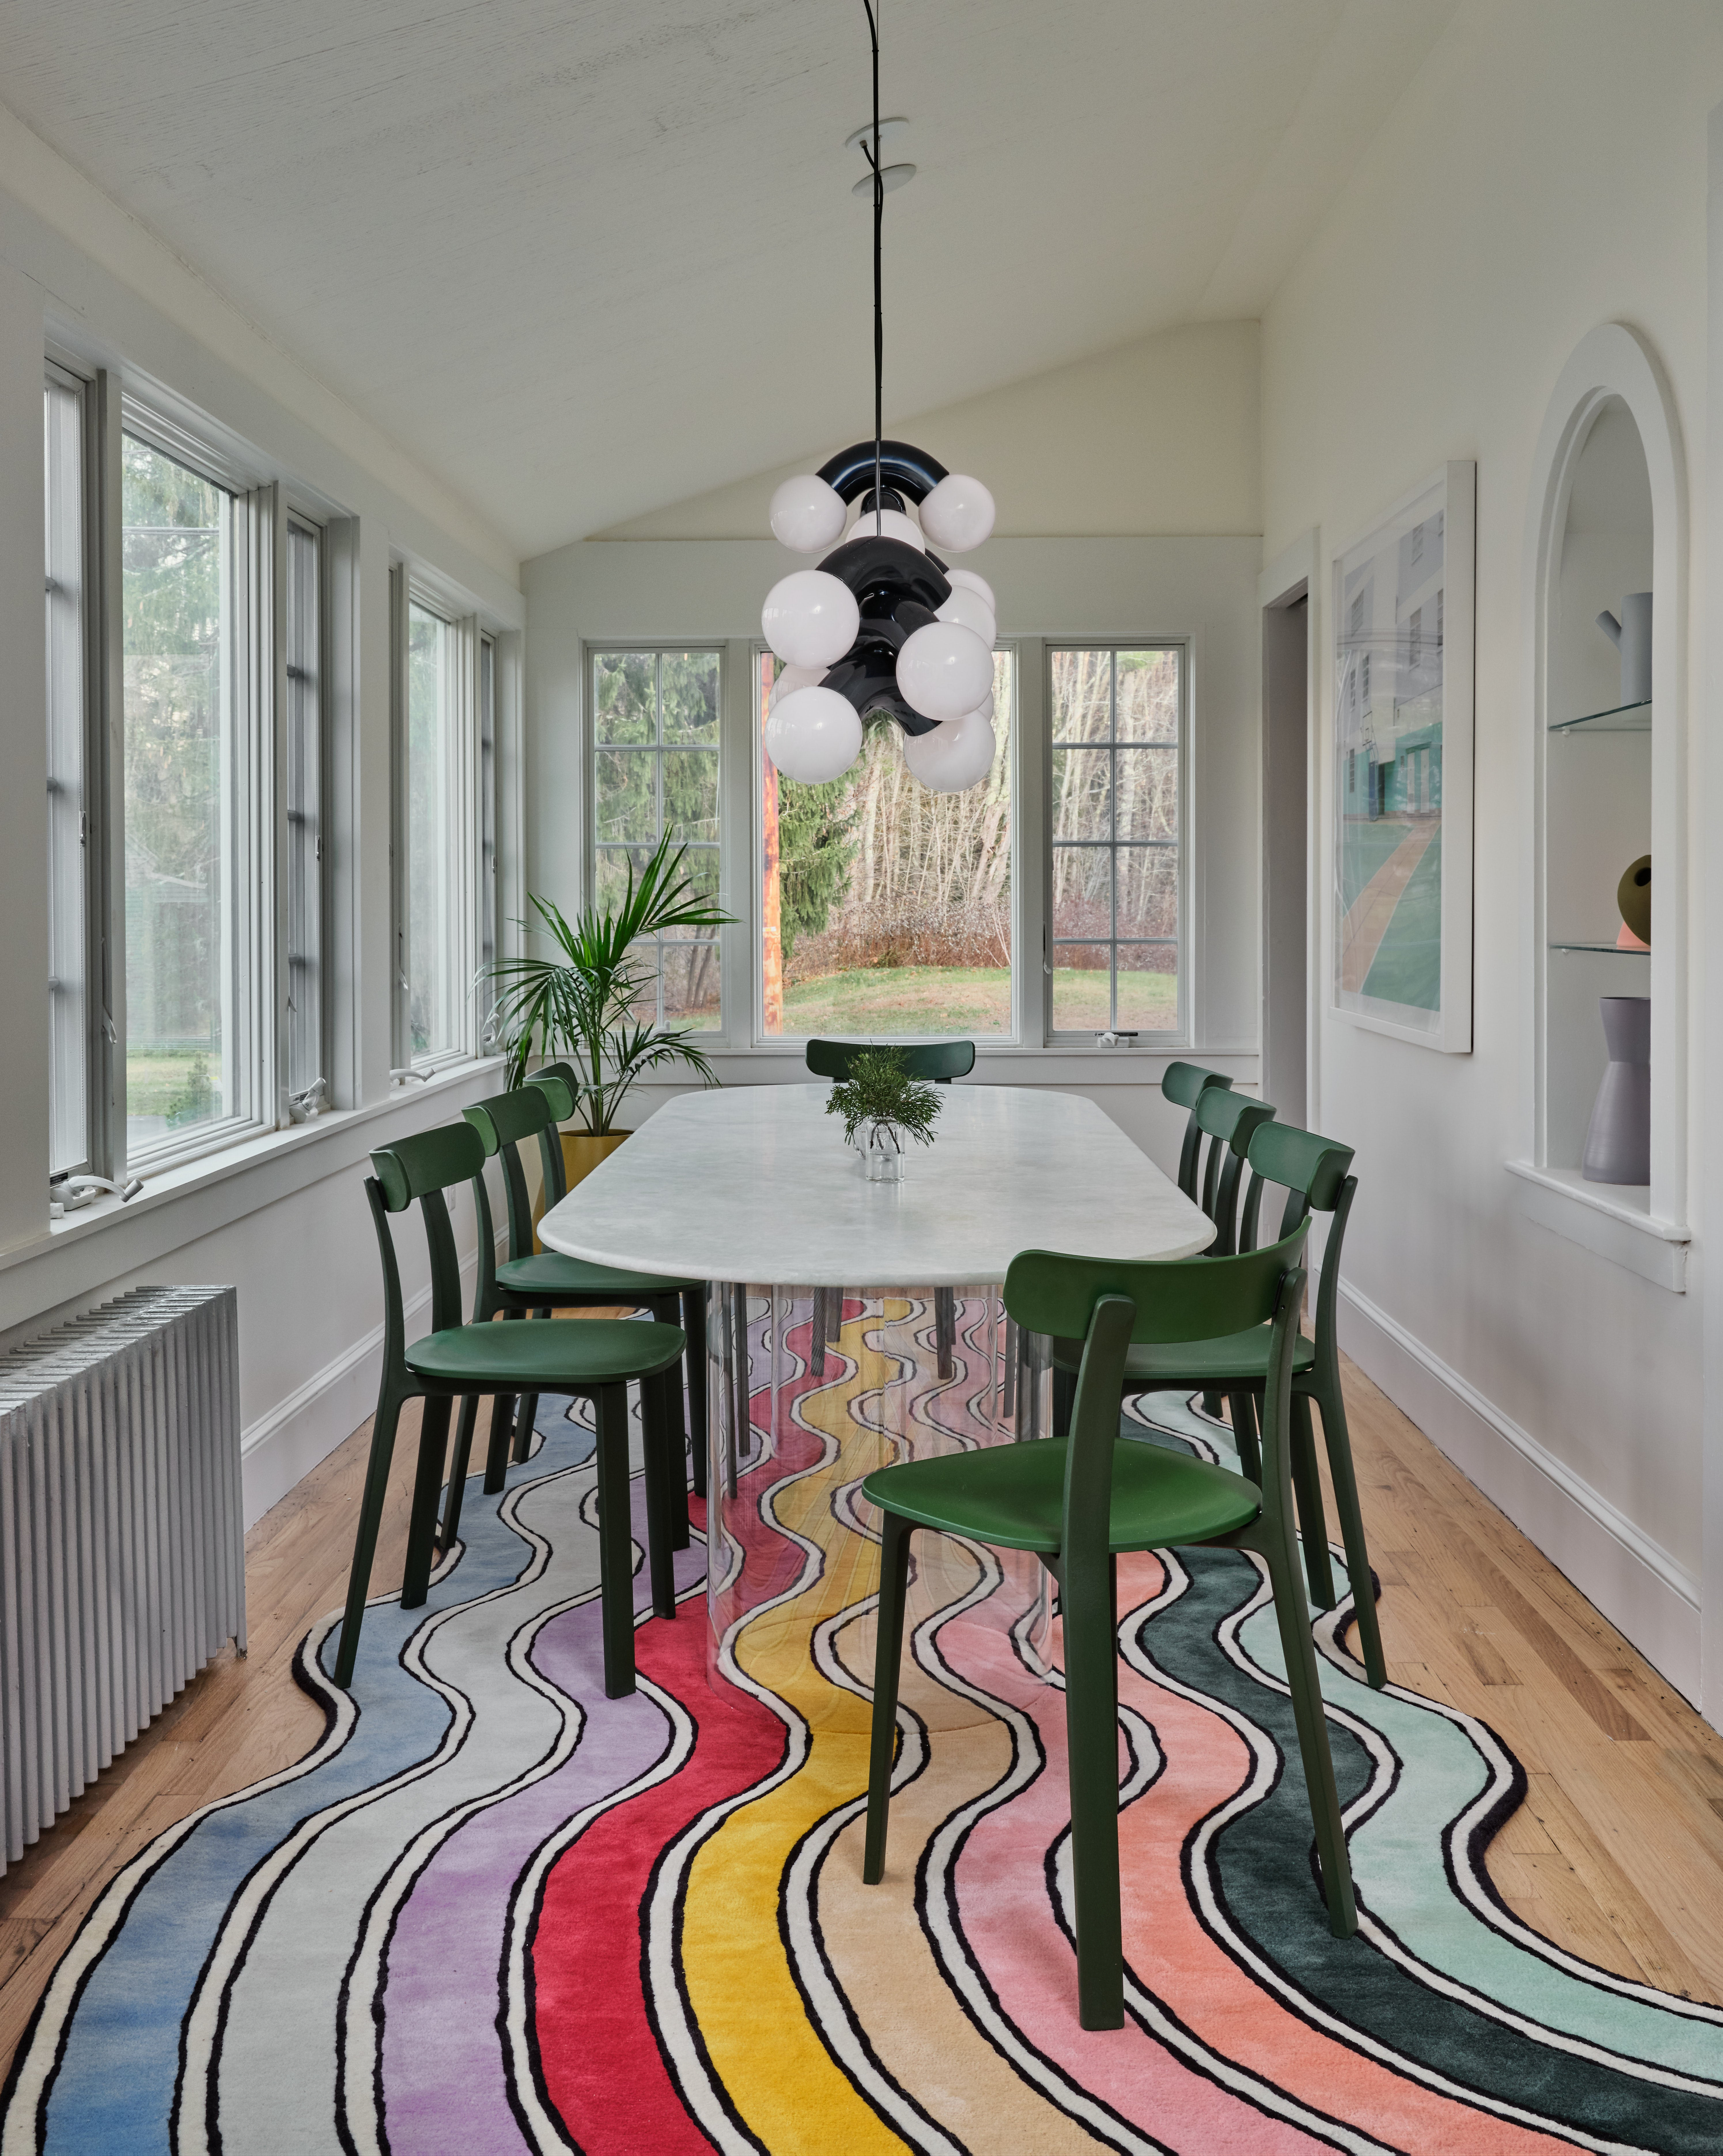 rainbow rug and dining table on it with green chairs